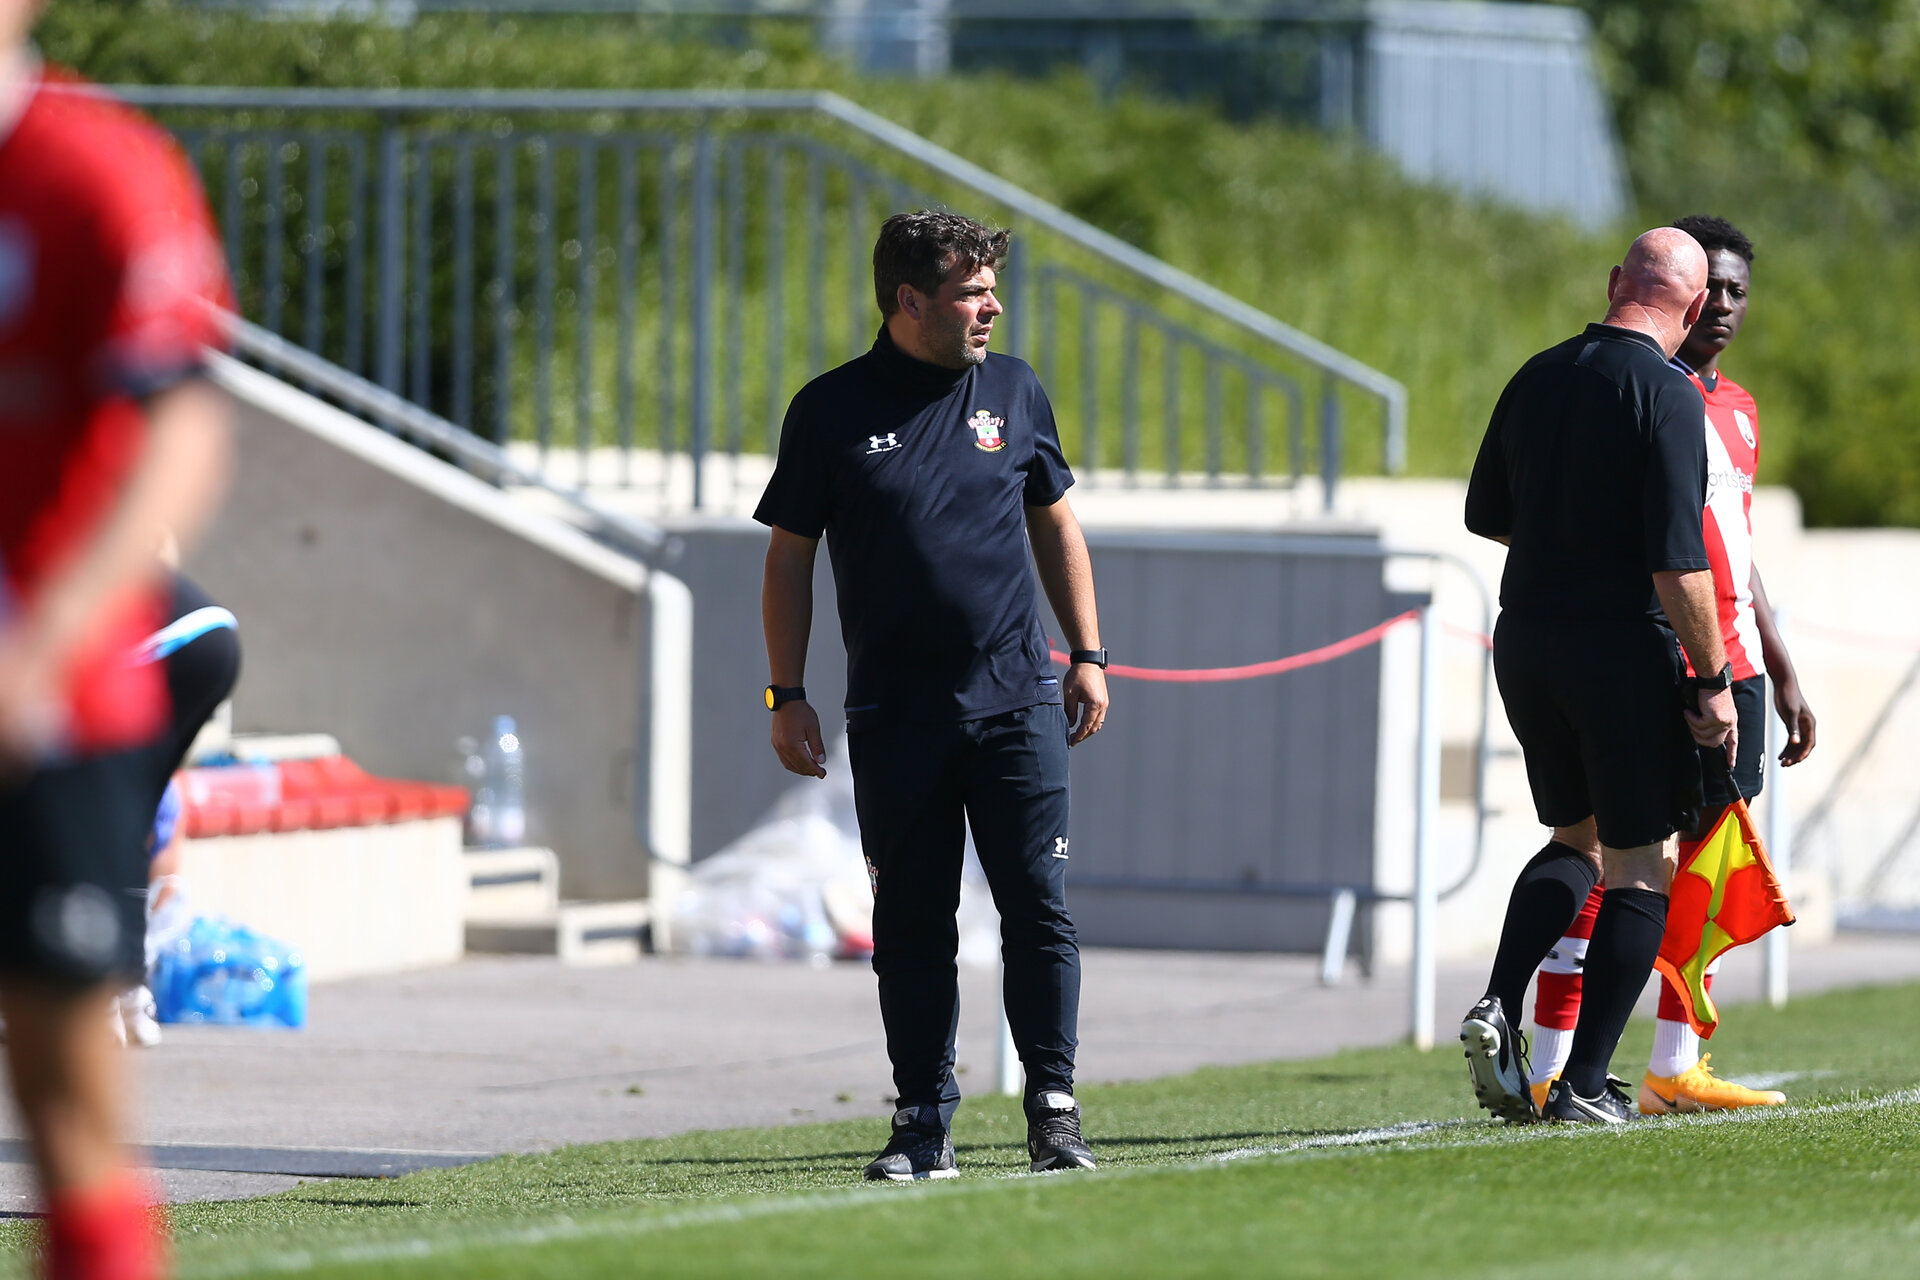 SOUTHAMPTON, ENGLAND - SEPTEMBER 05: David Horseman during a Southampton FC U23 pre season friendly against Working FC at Staplewood Campus on September 05, 2020 in Southampton, England. (Photo by Isabelle Field/Southampton FC)